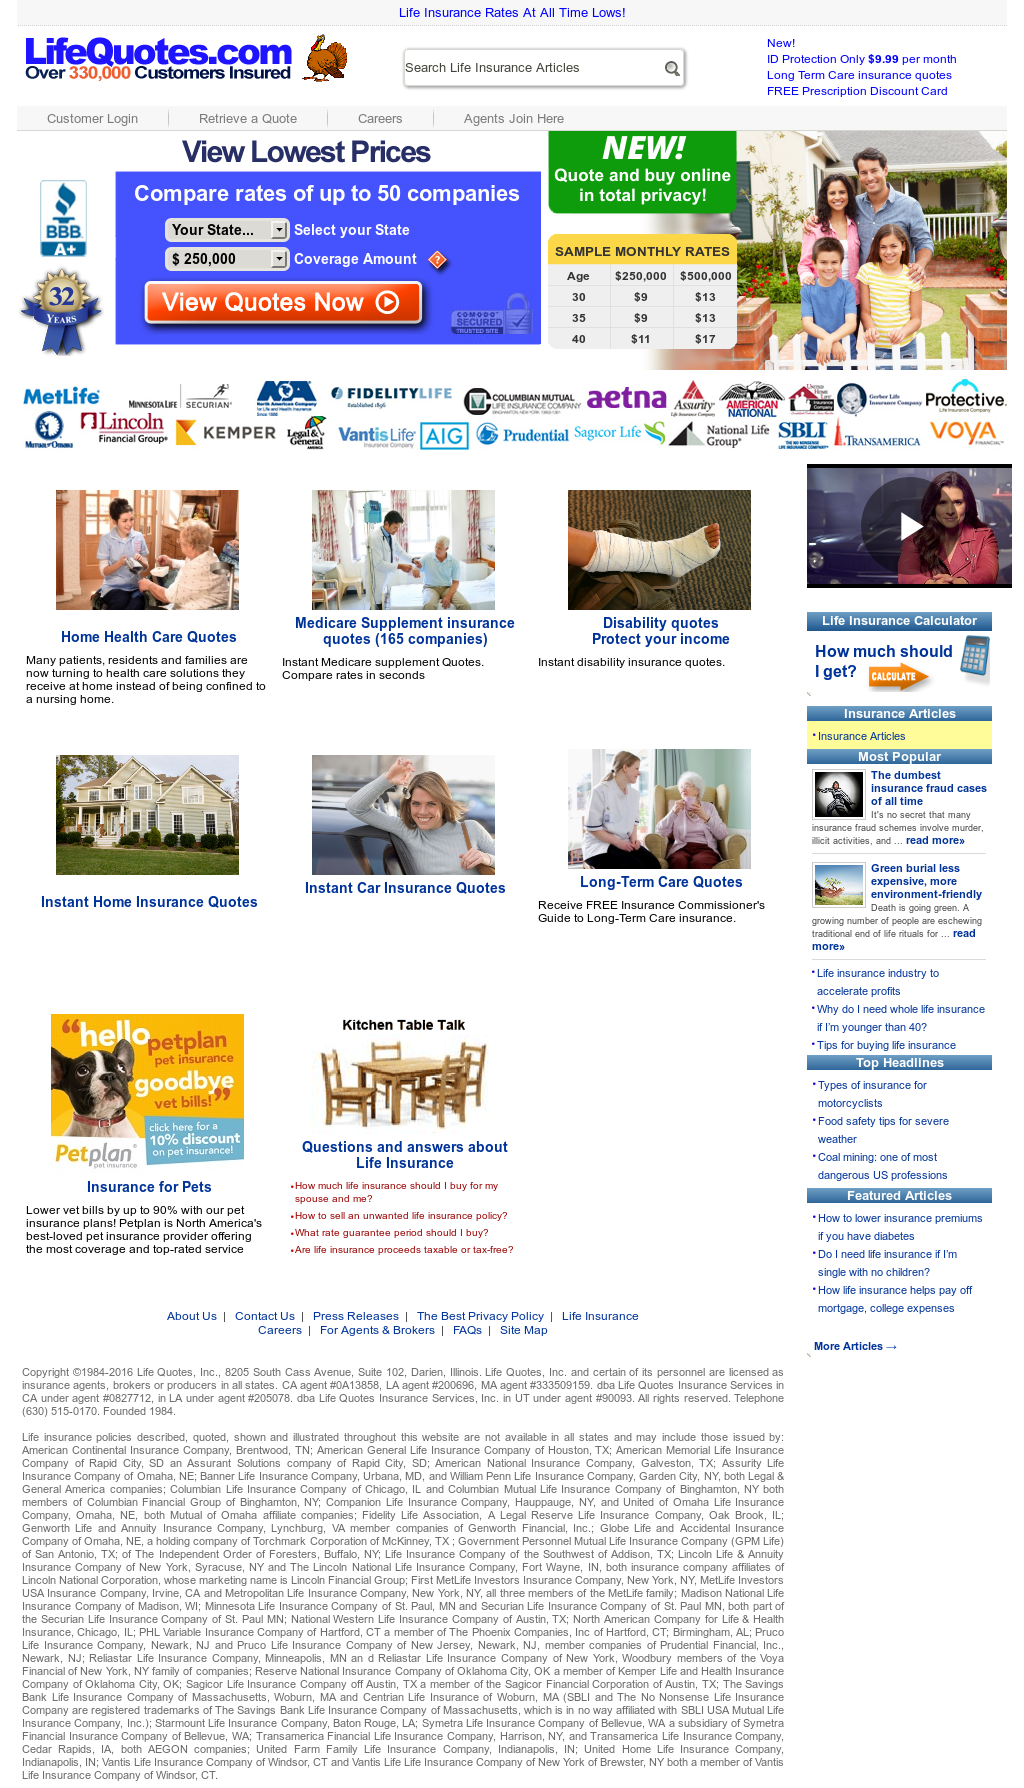 Life Quotes Insurance Careers Quotes About Life